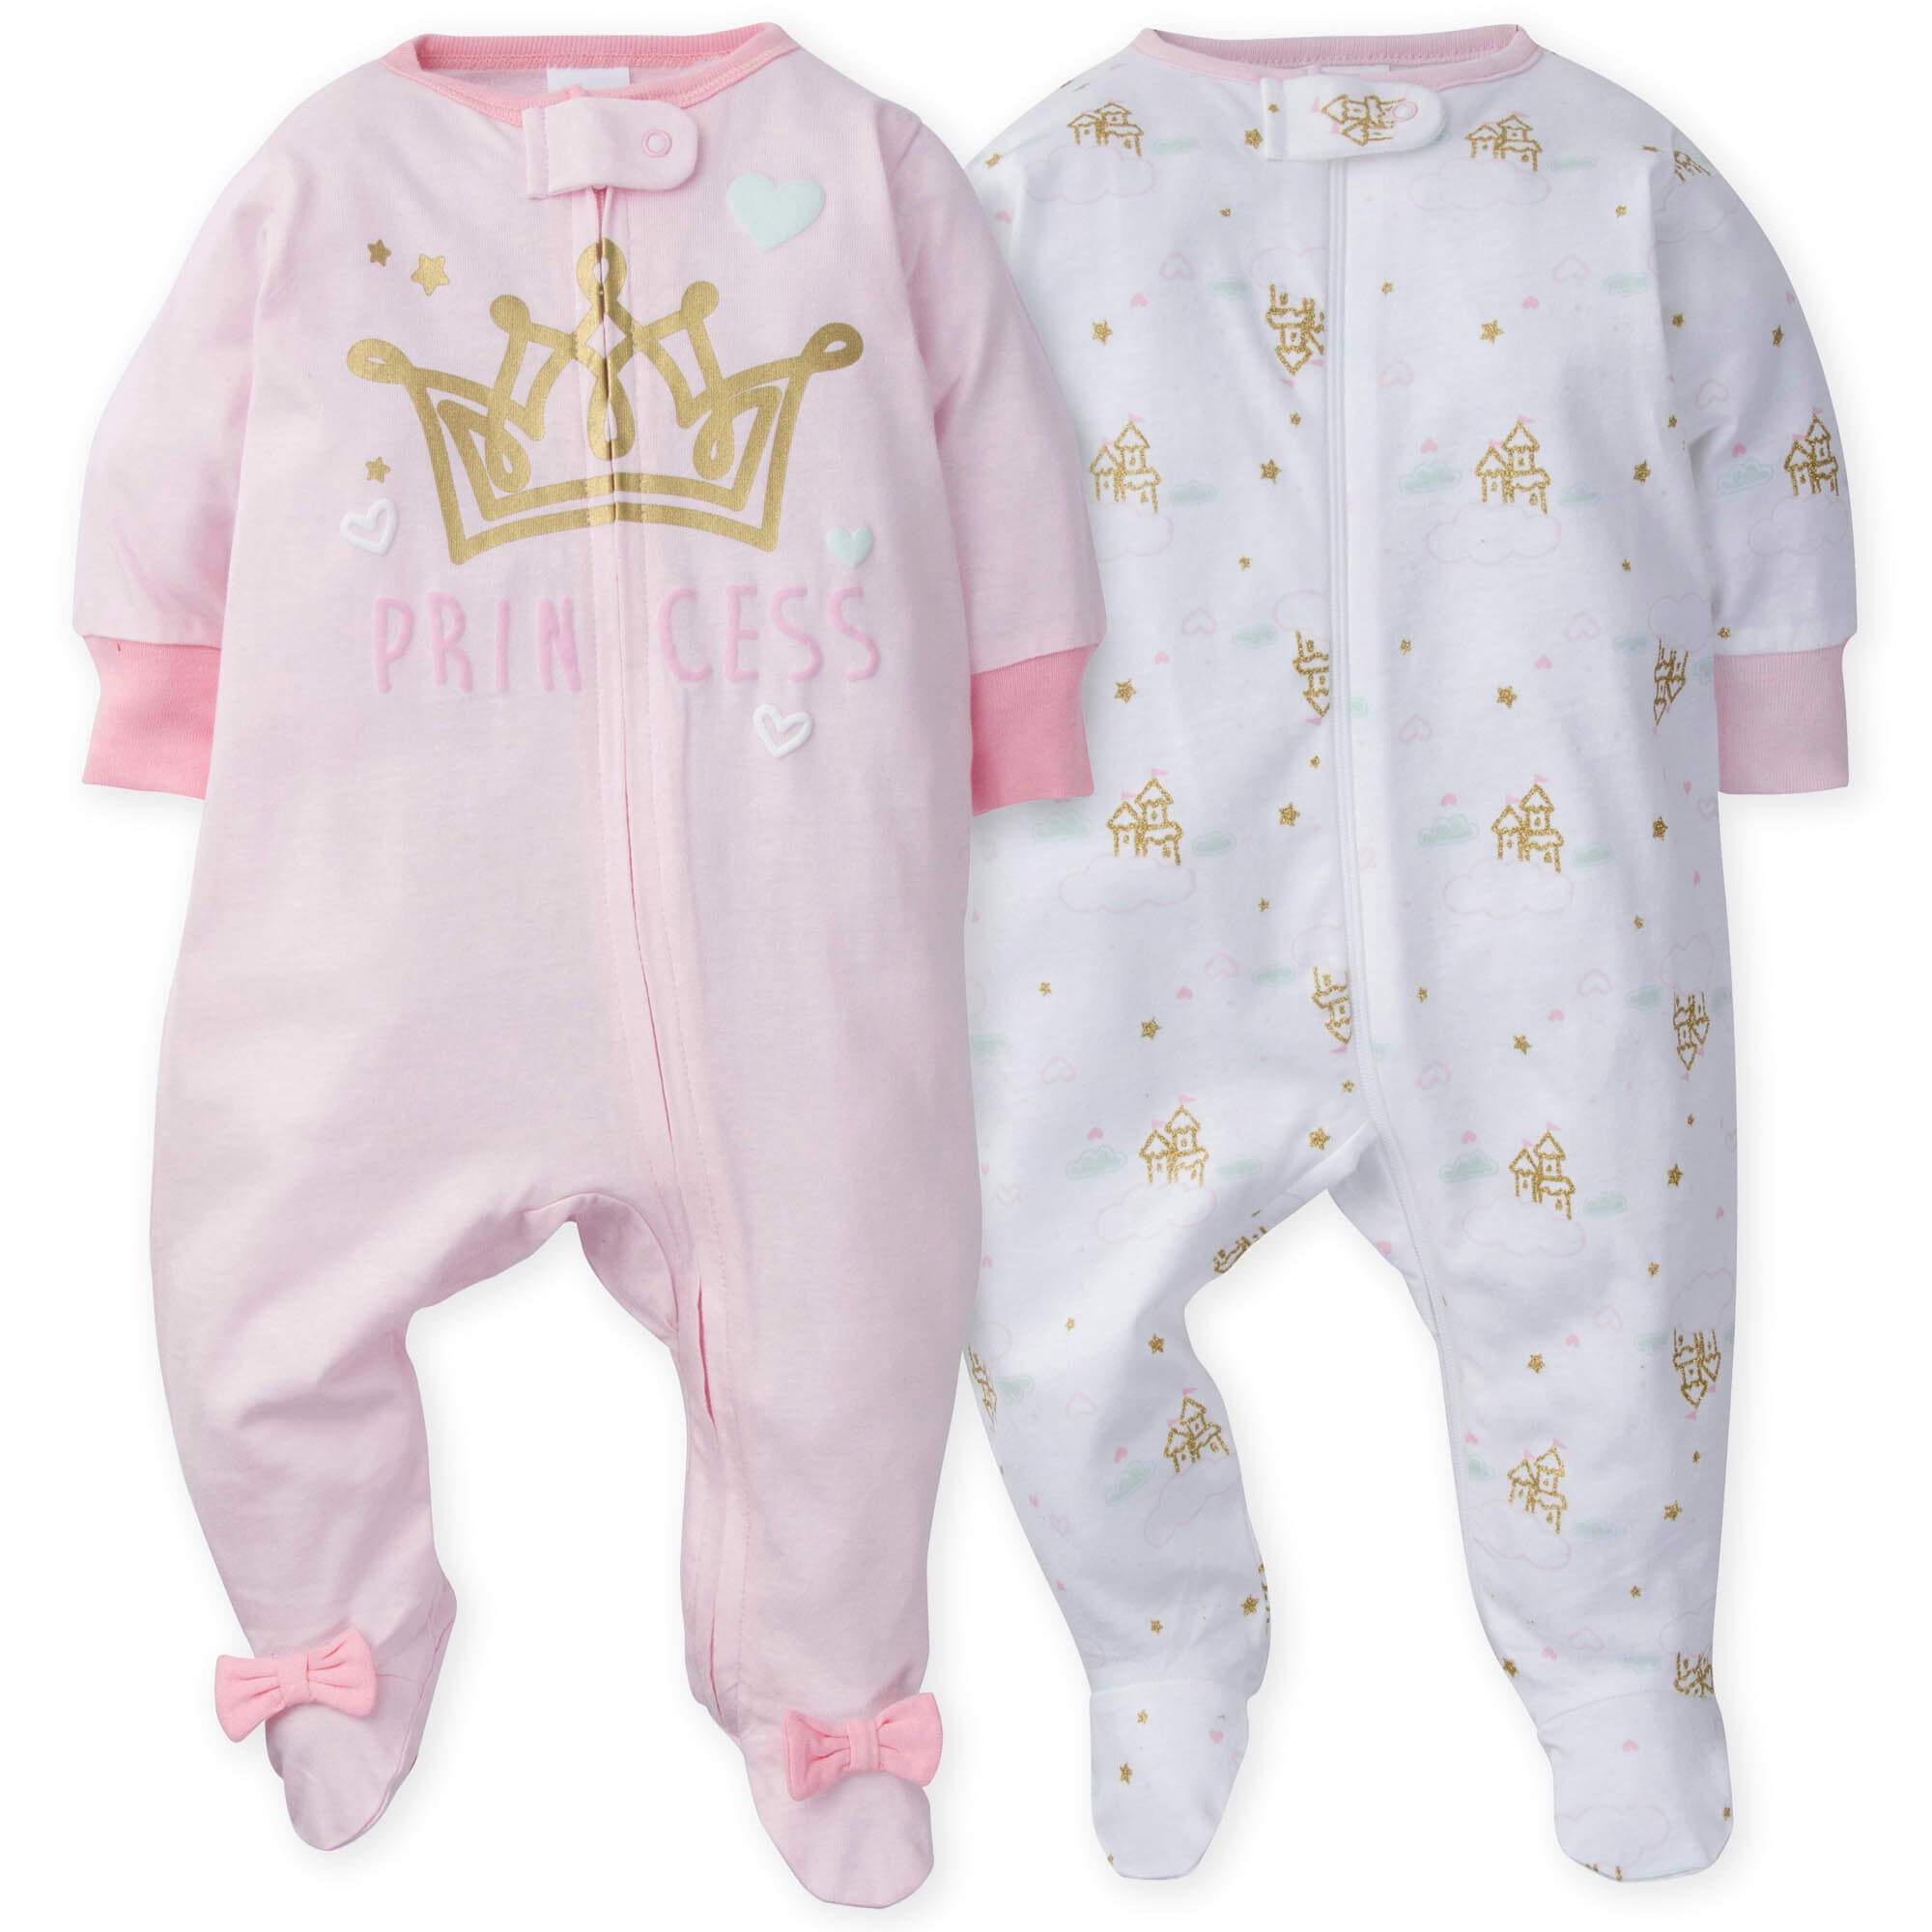 2-Pack Girls Princess Castle Sleep N' Play-Gerber Childrenswear